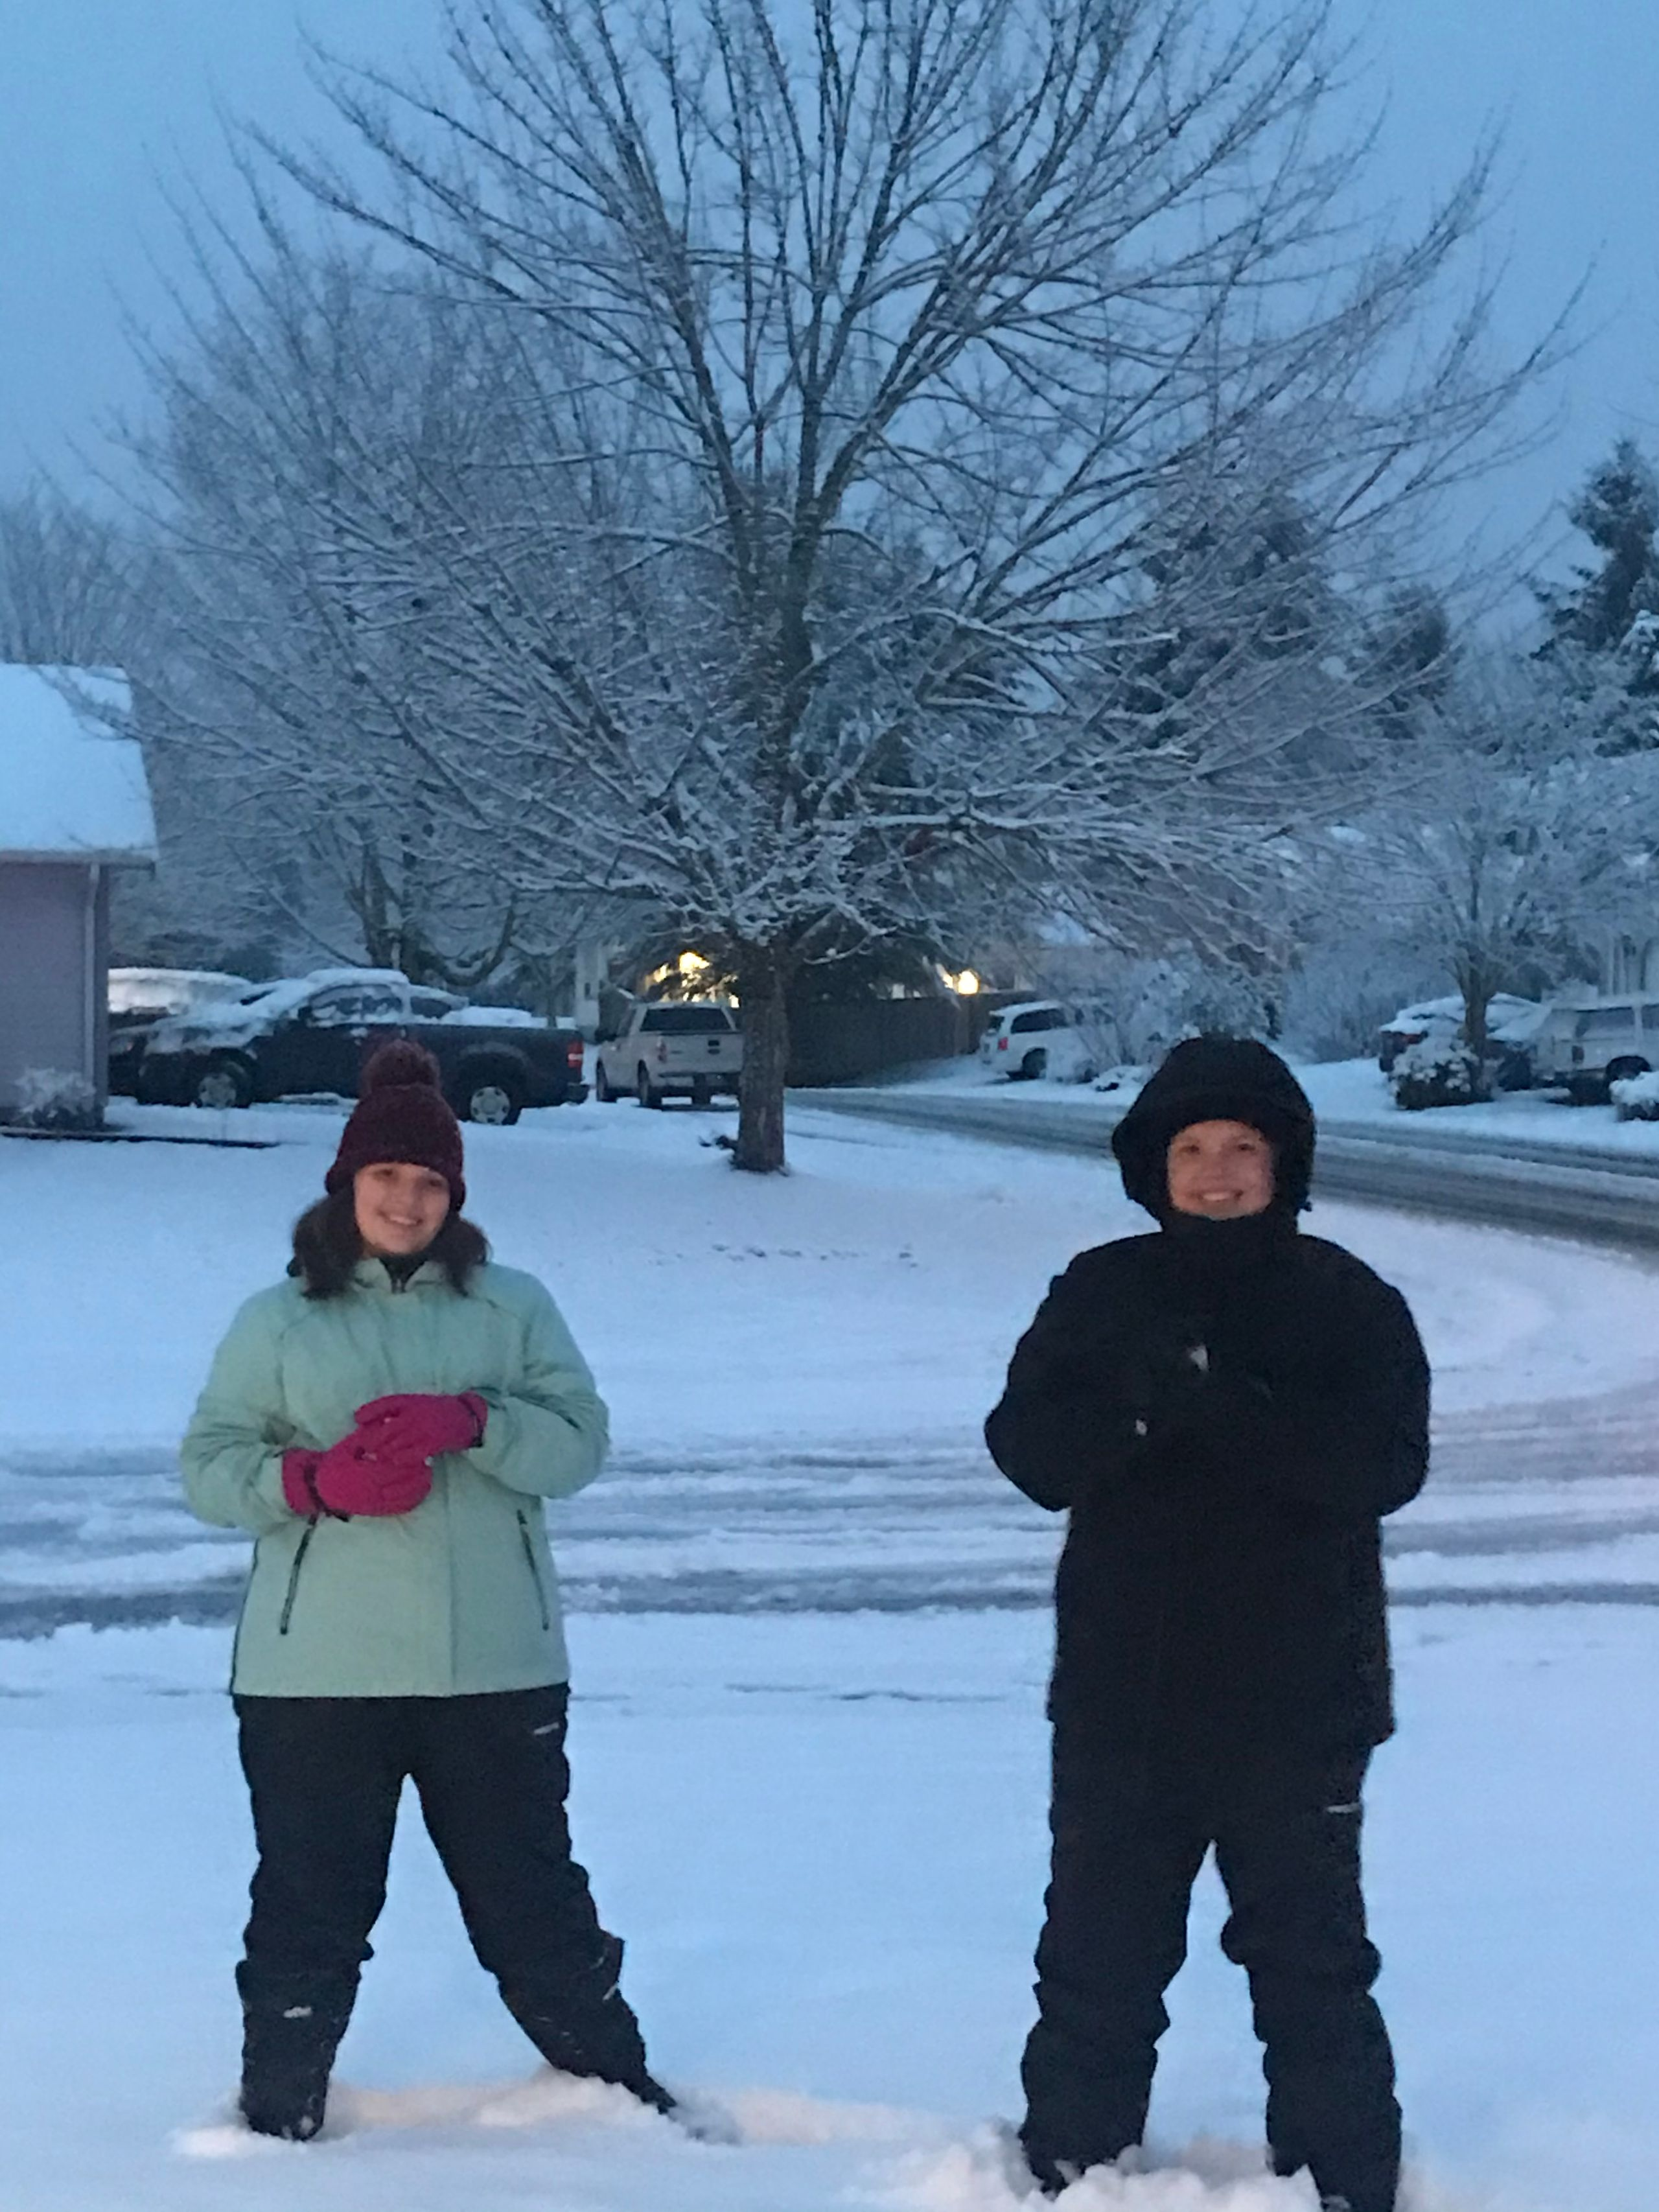 My kids Madison and Travis enjoying the snow in Lacey! And early 13th birthday present for Travis who's bday is Saturday. (Image: Alicia Patterson / Chime)